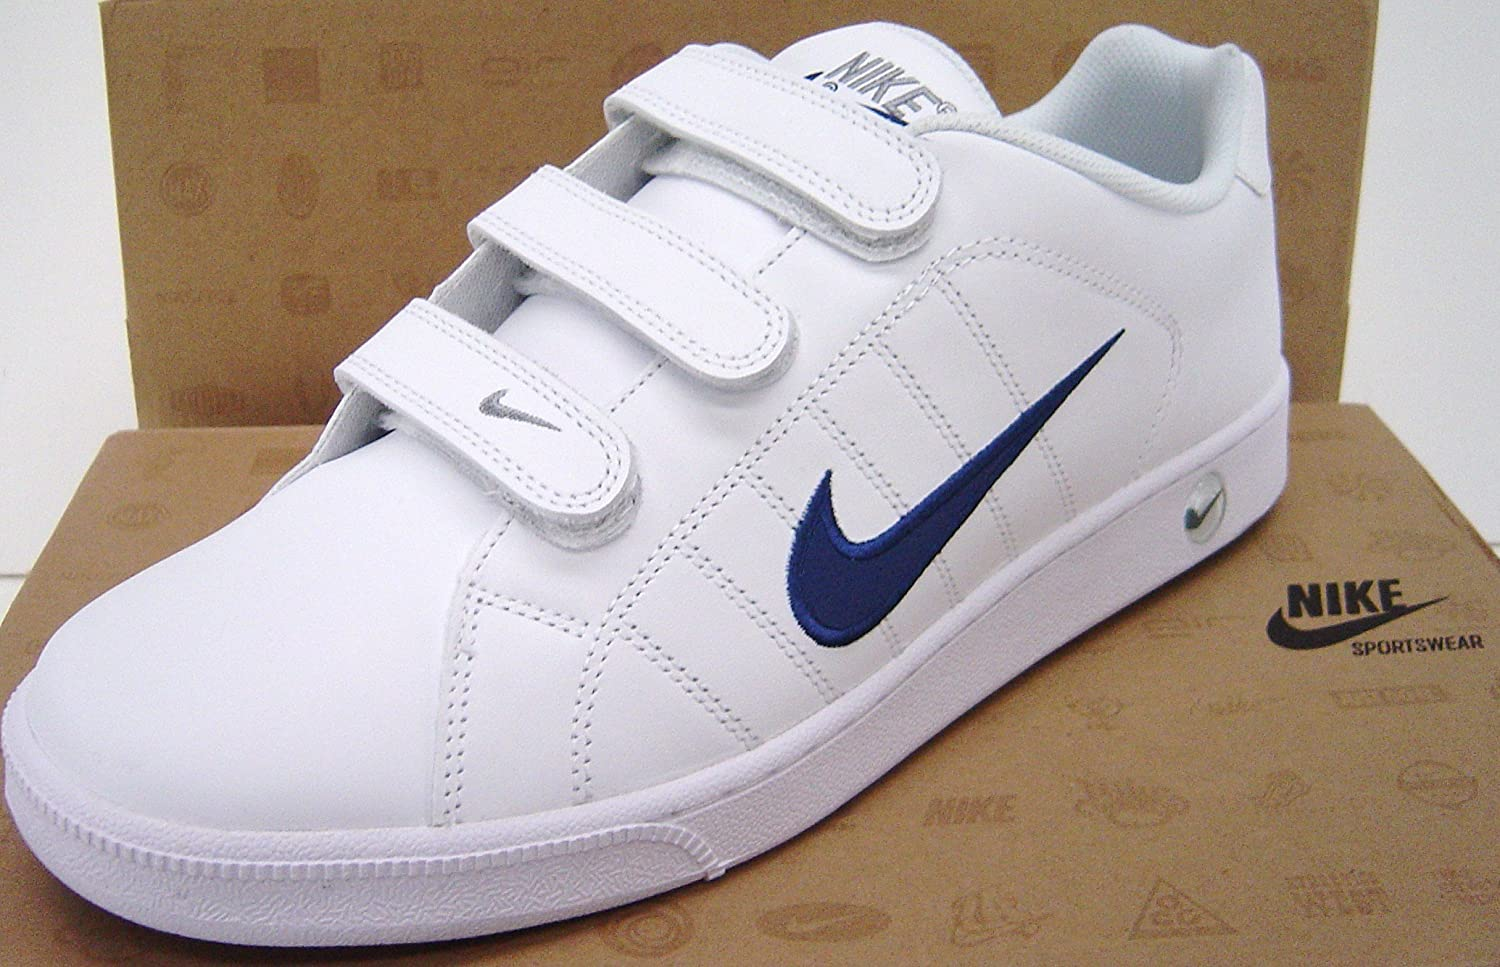 nike tennis shoes with velcro straps